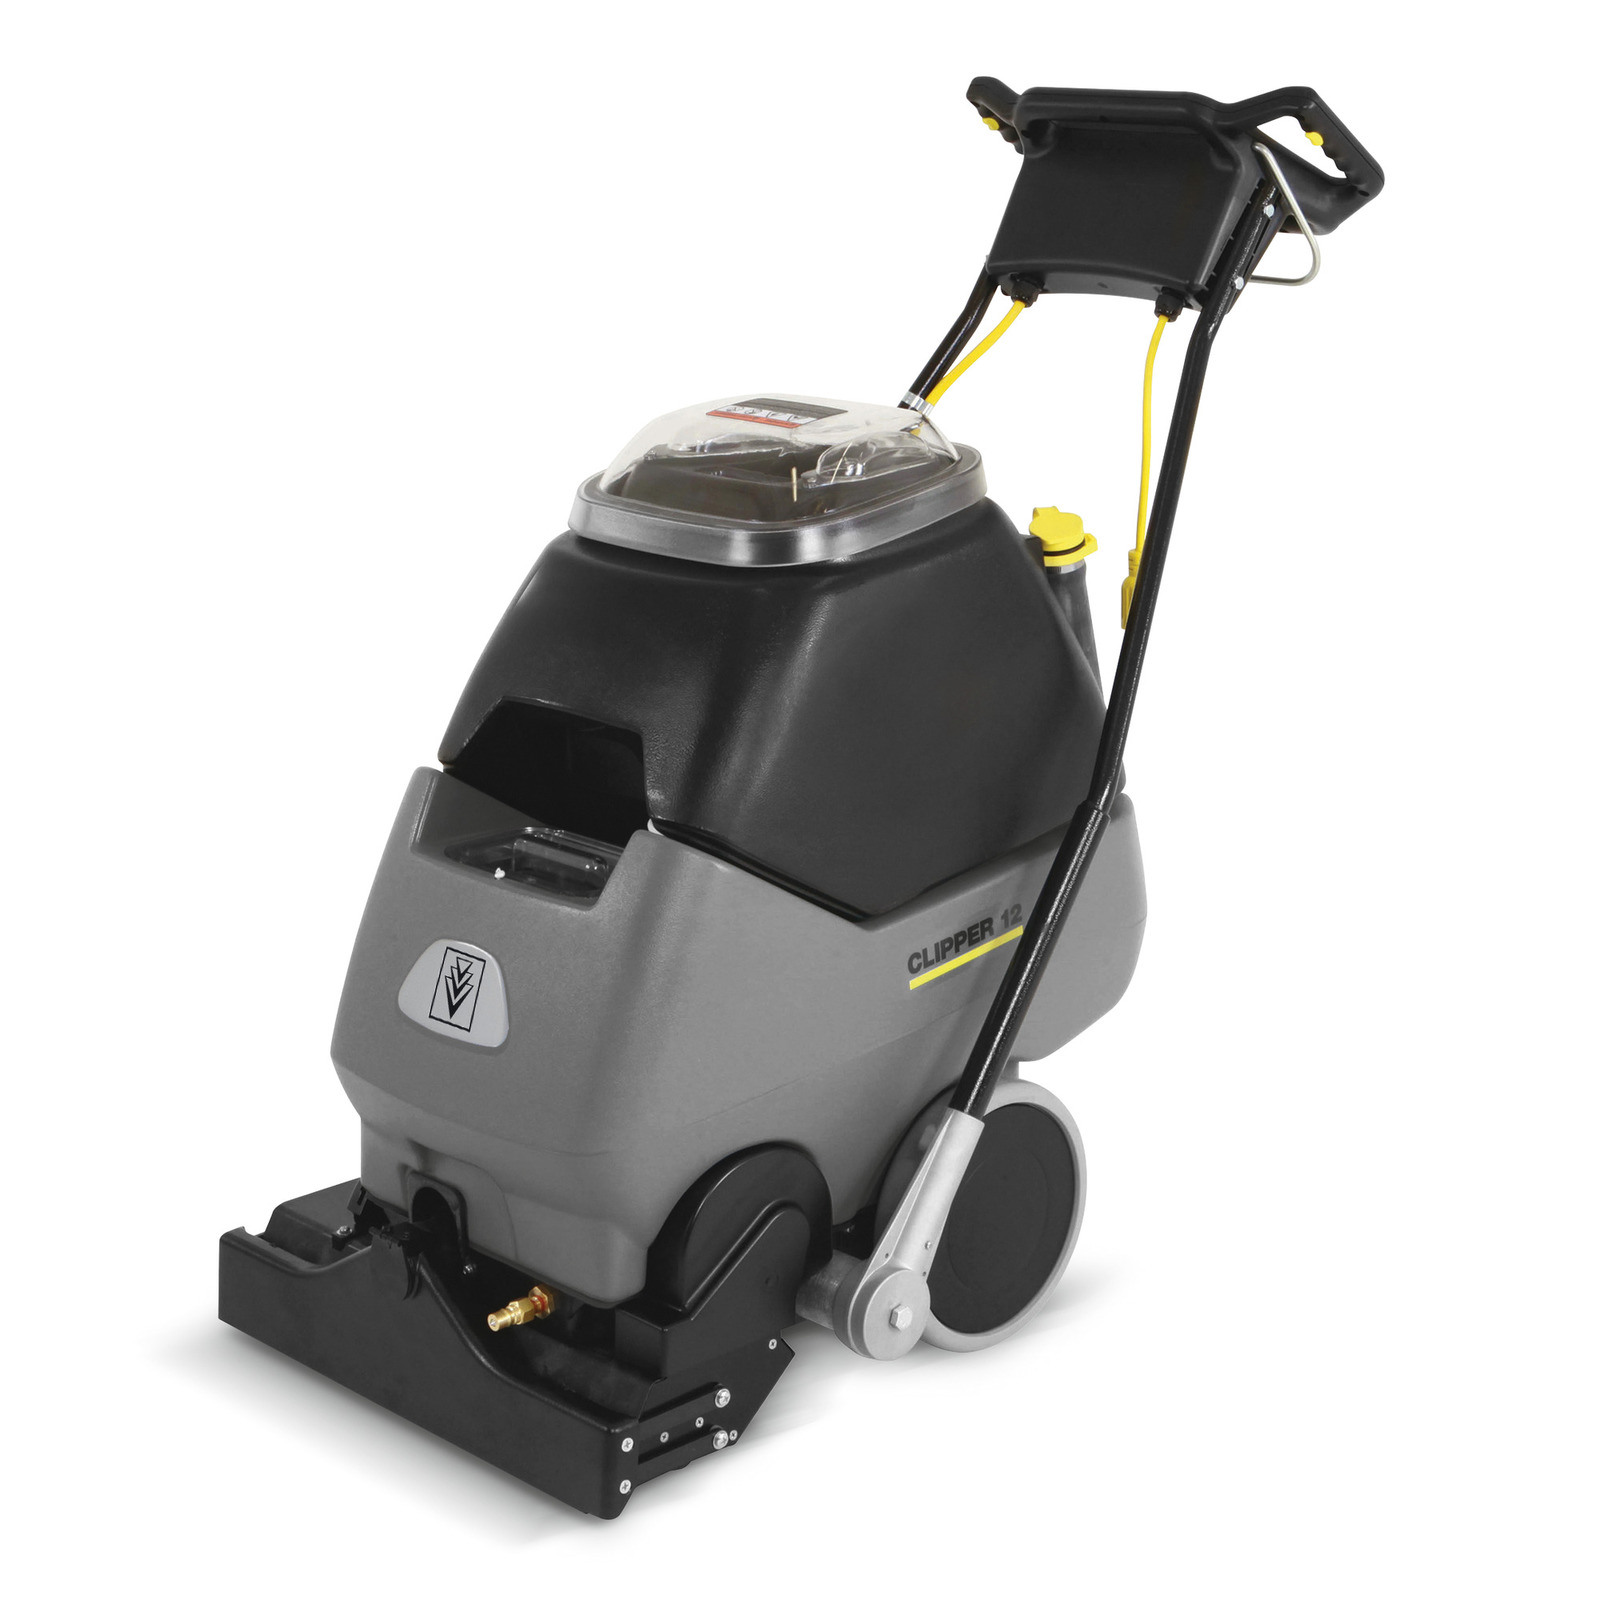 Clipper 12 Commercial Walk Behind Carpet Extractor 12